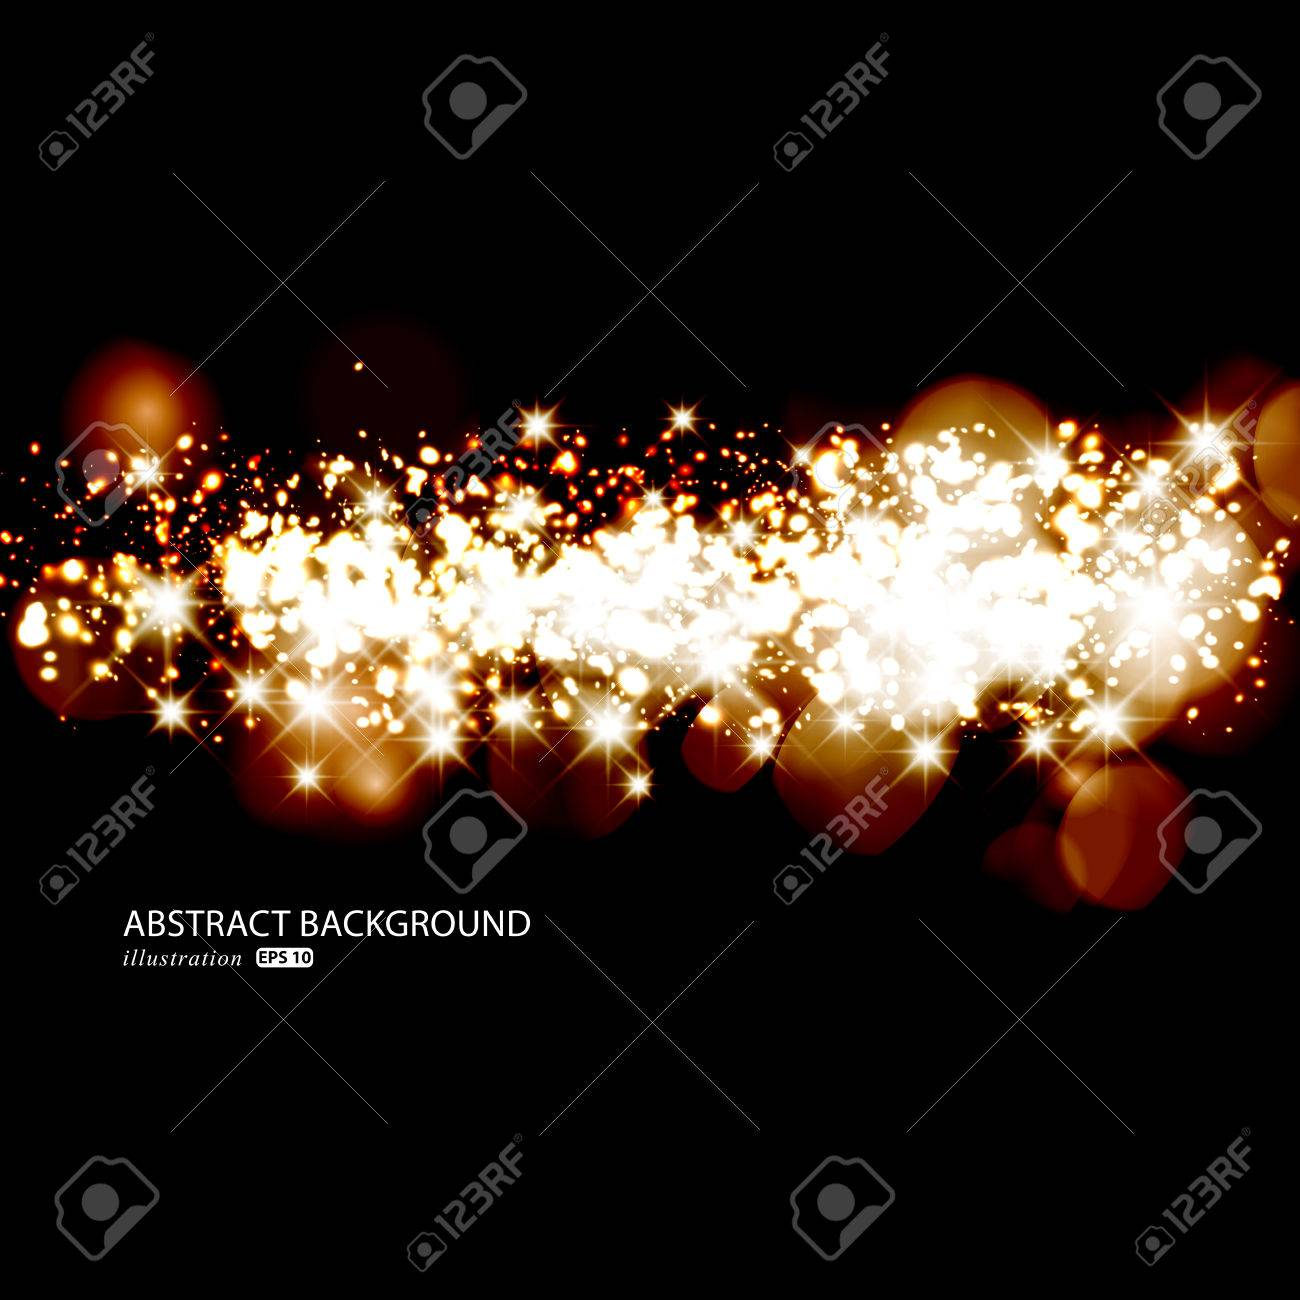 Glittery lights golden abstract Christmas background. Stock Vector - 23768476